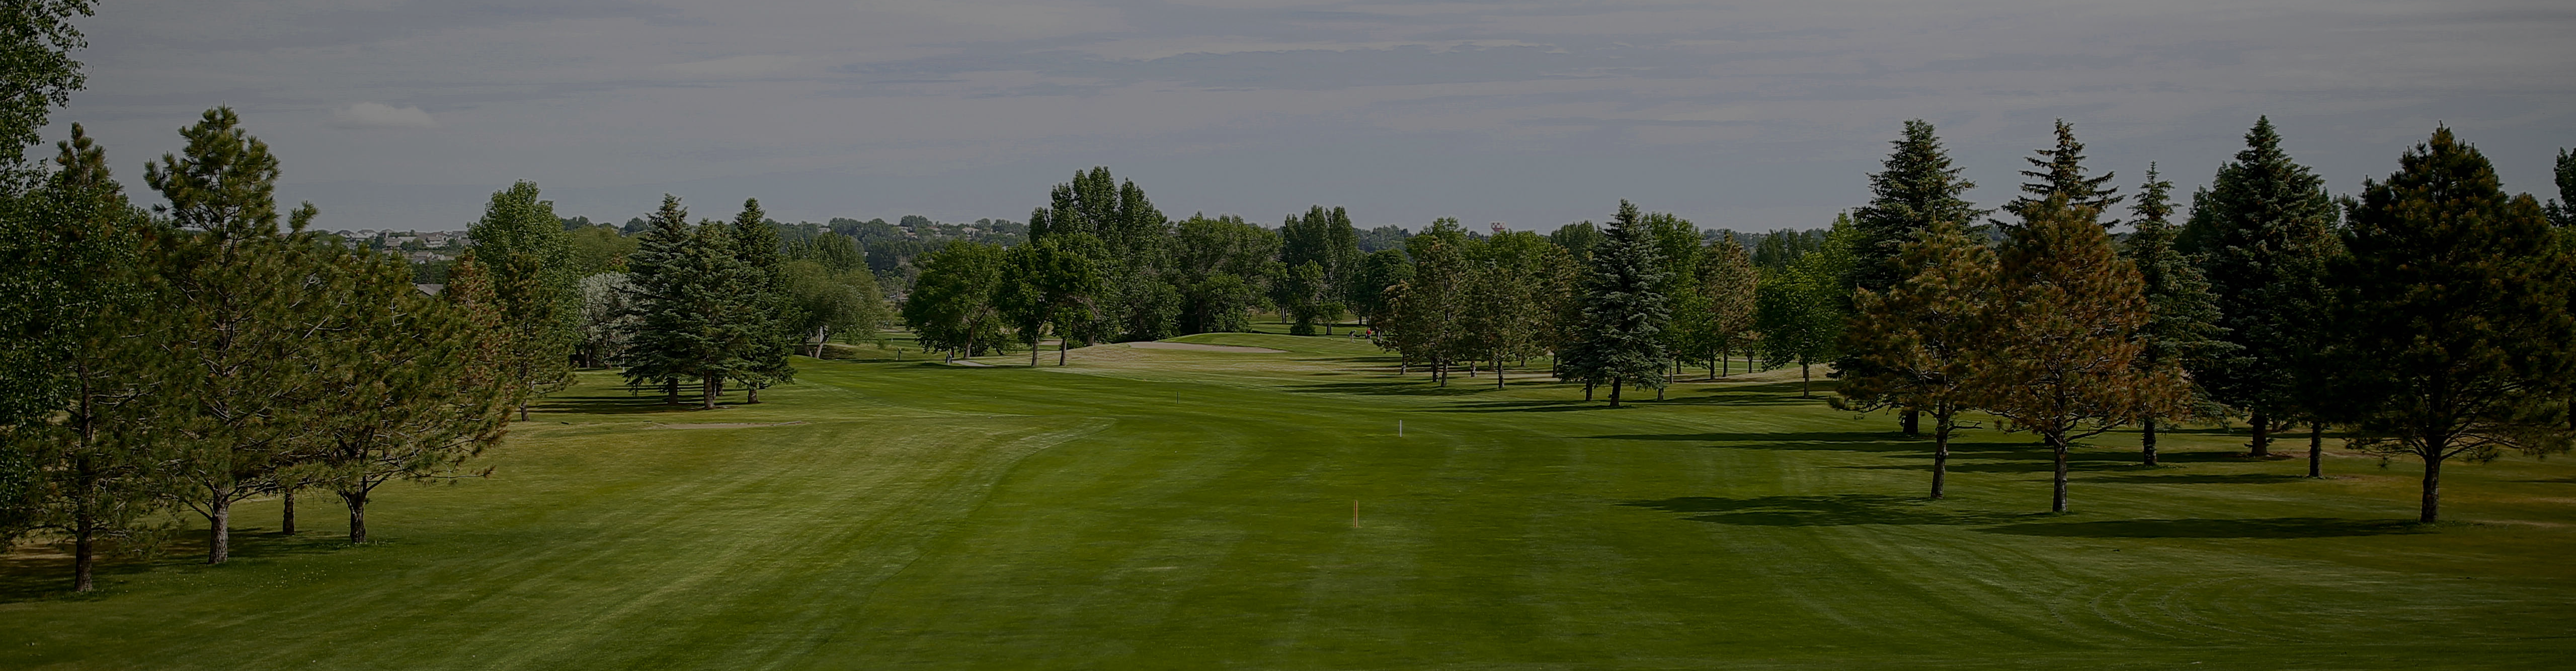 Minot Parks and Recreation | Souris Valley Golf Course